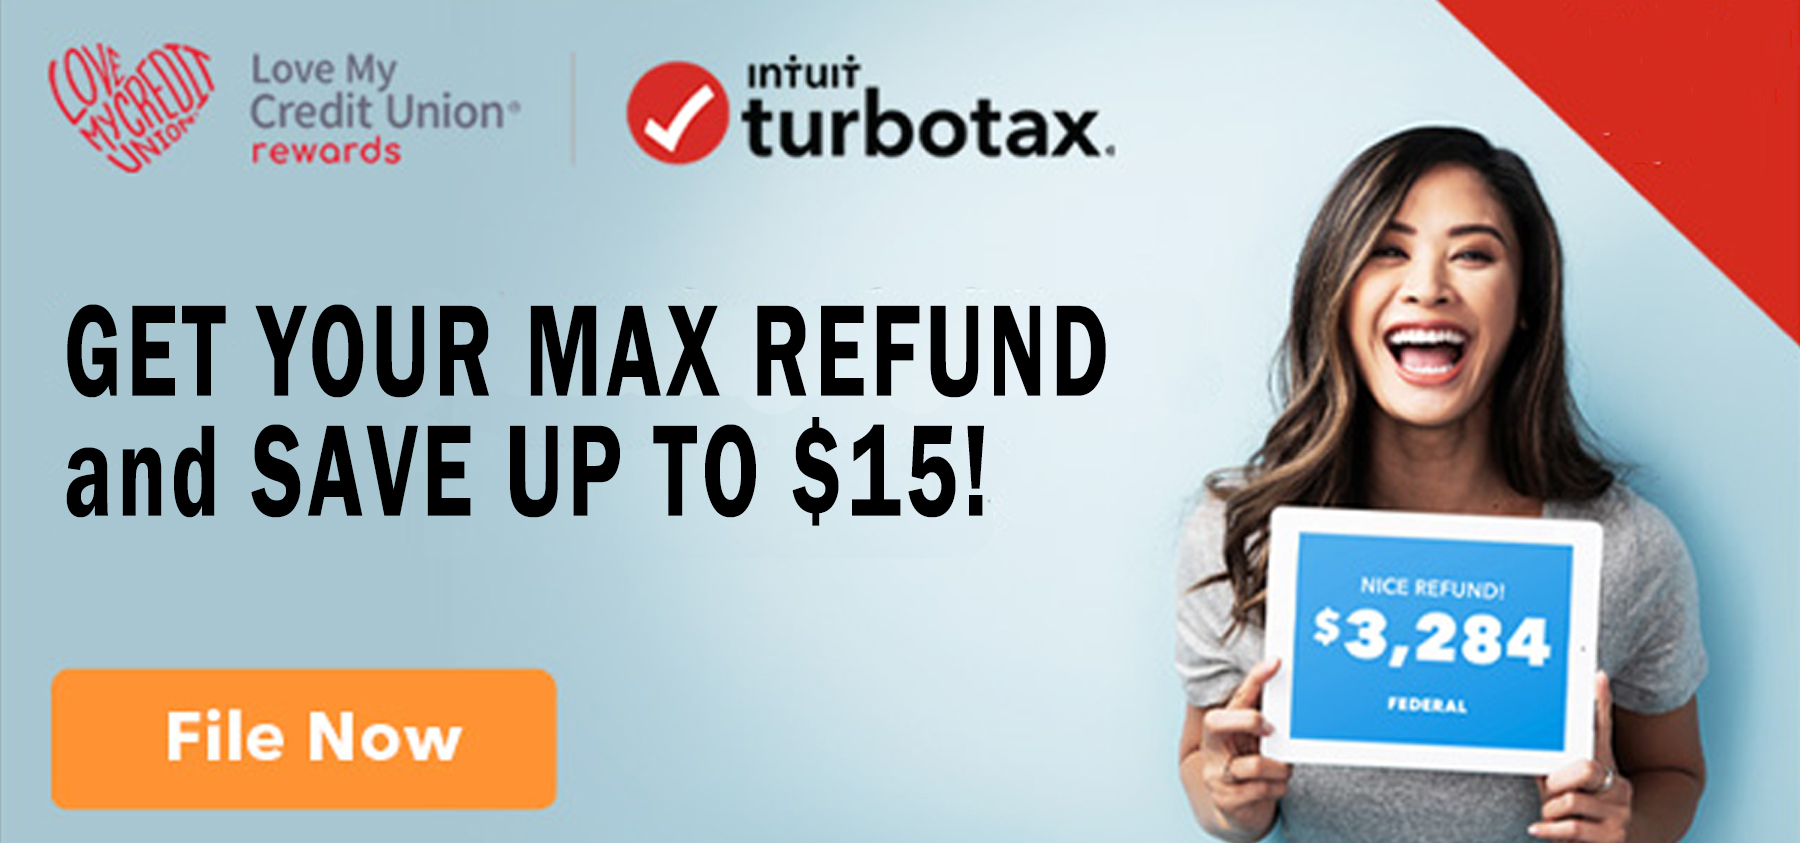 Get your max refund and save up to $15 TurboTax